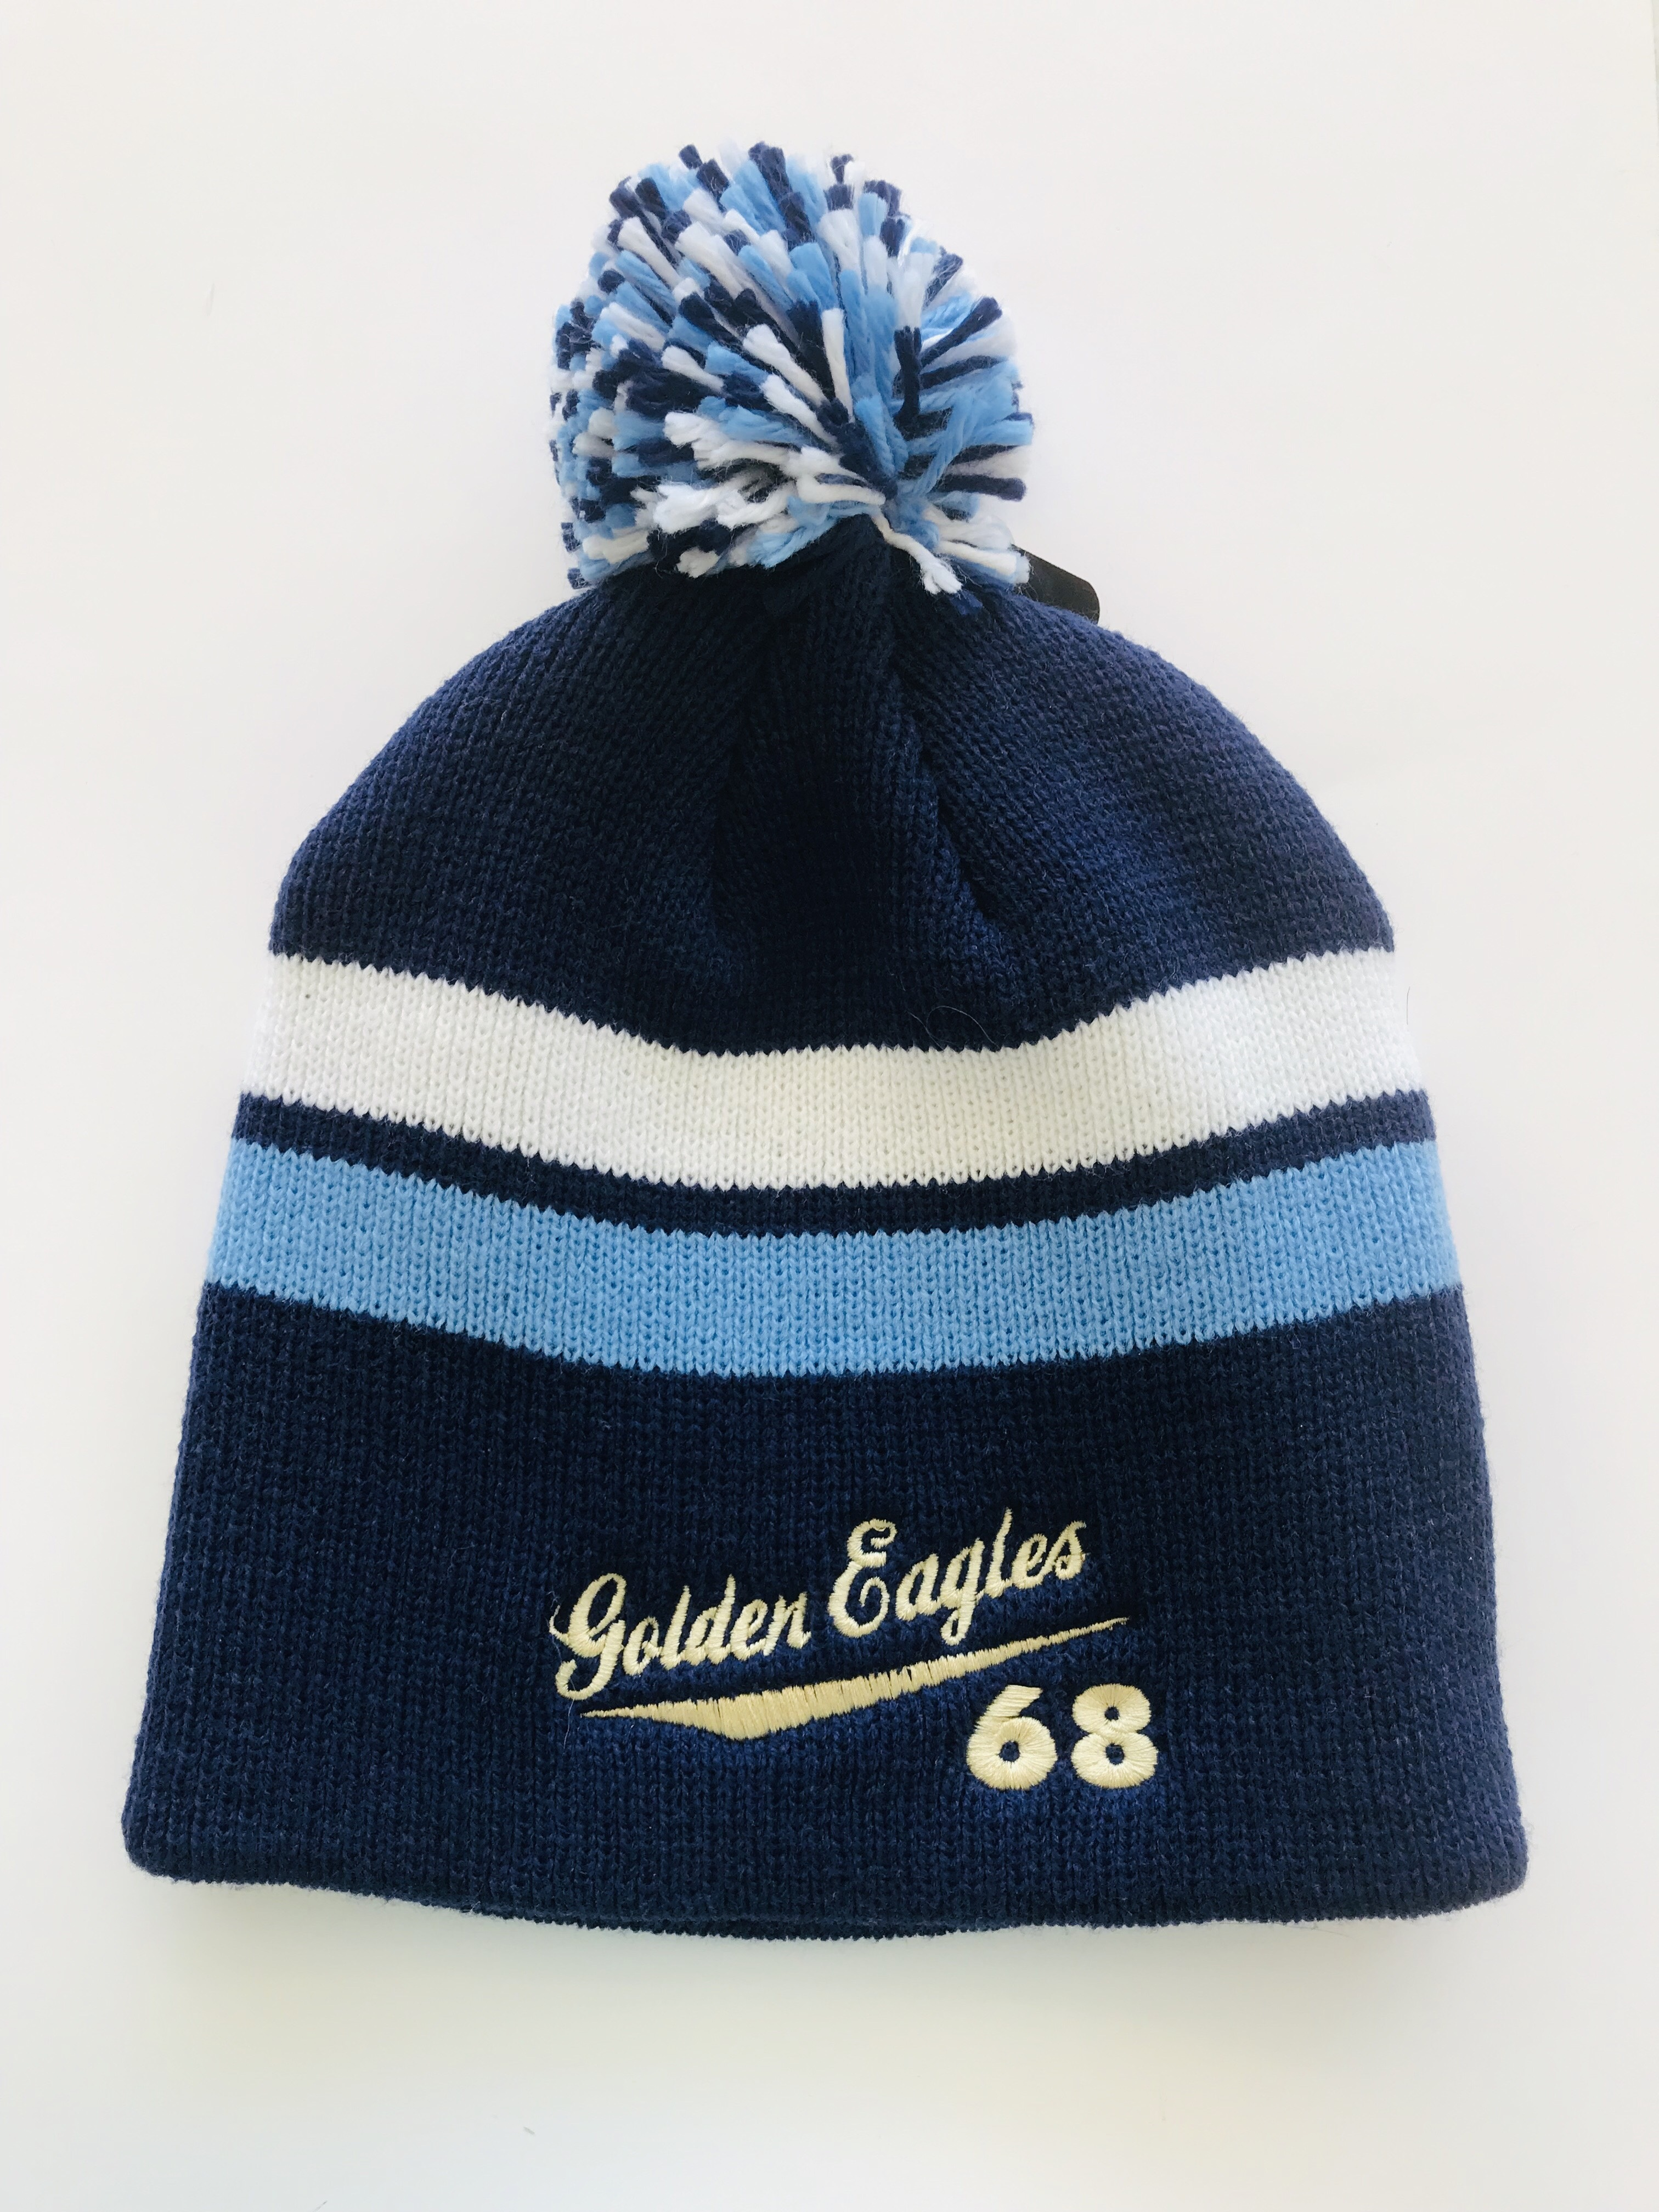 '68 Golden Eagles Pom Pom Beanie